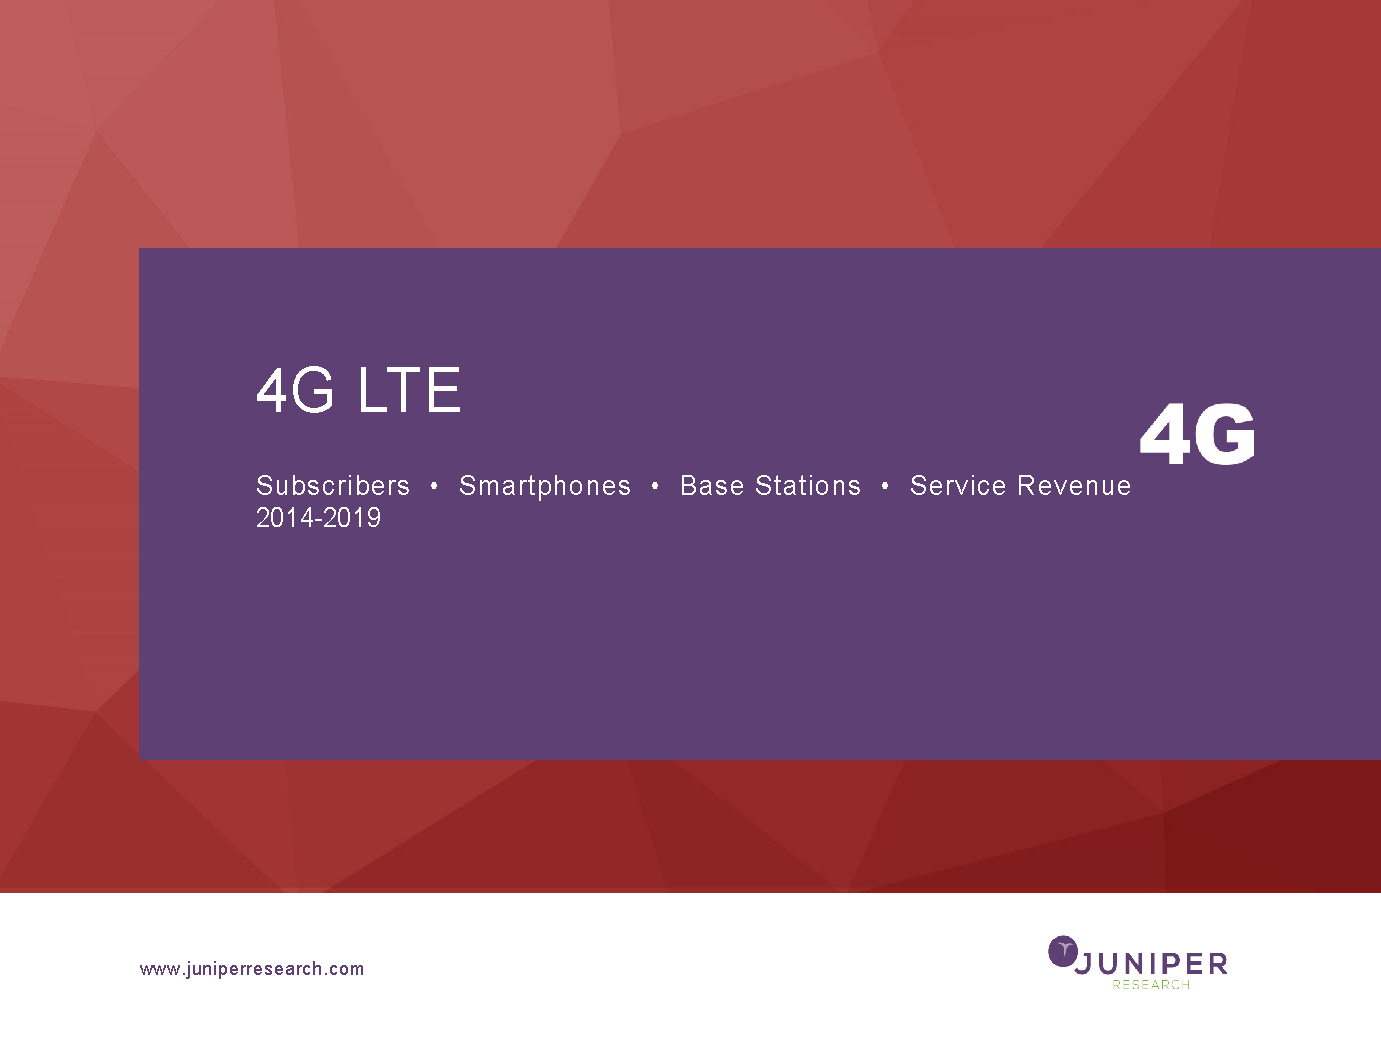 4G LTE Strategies